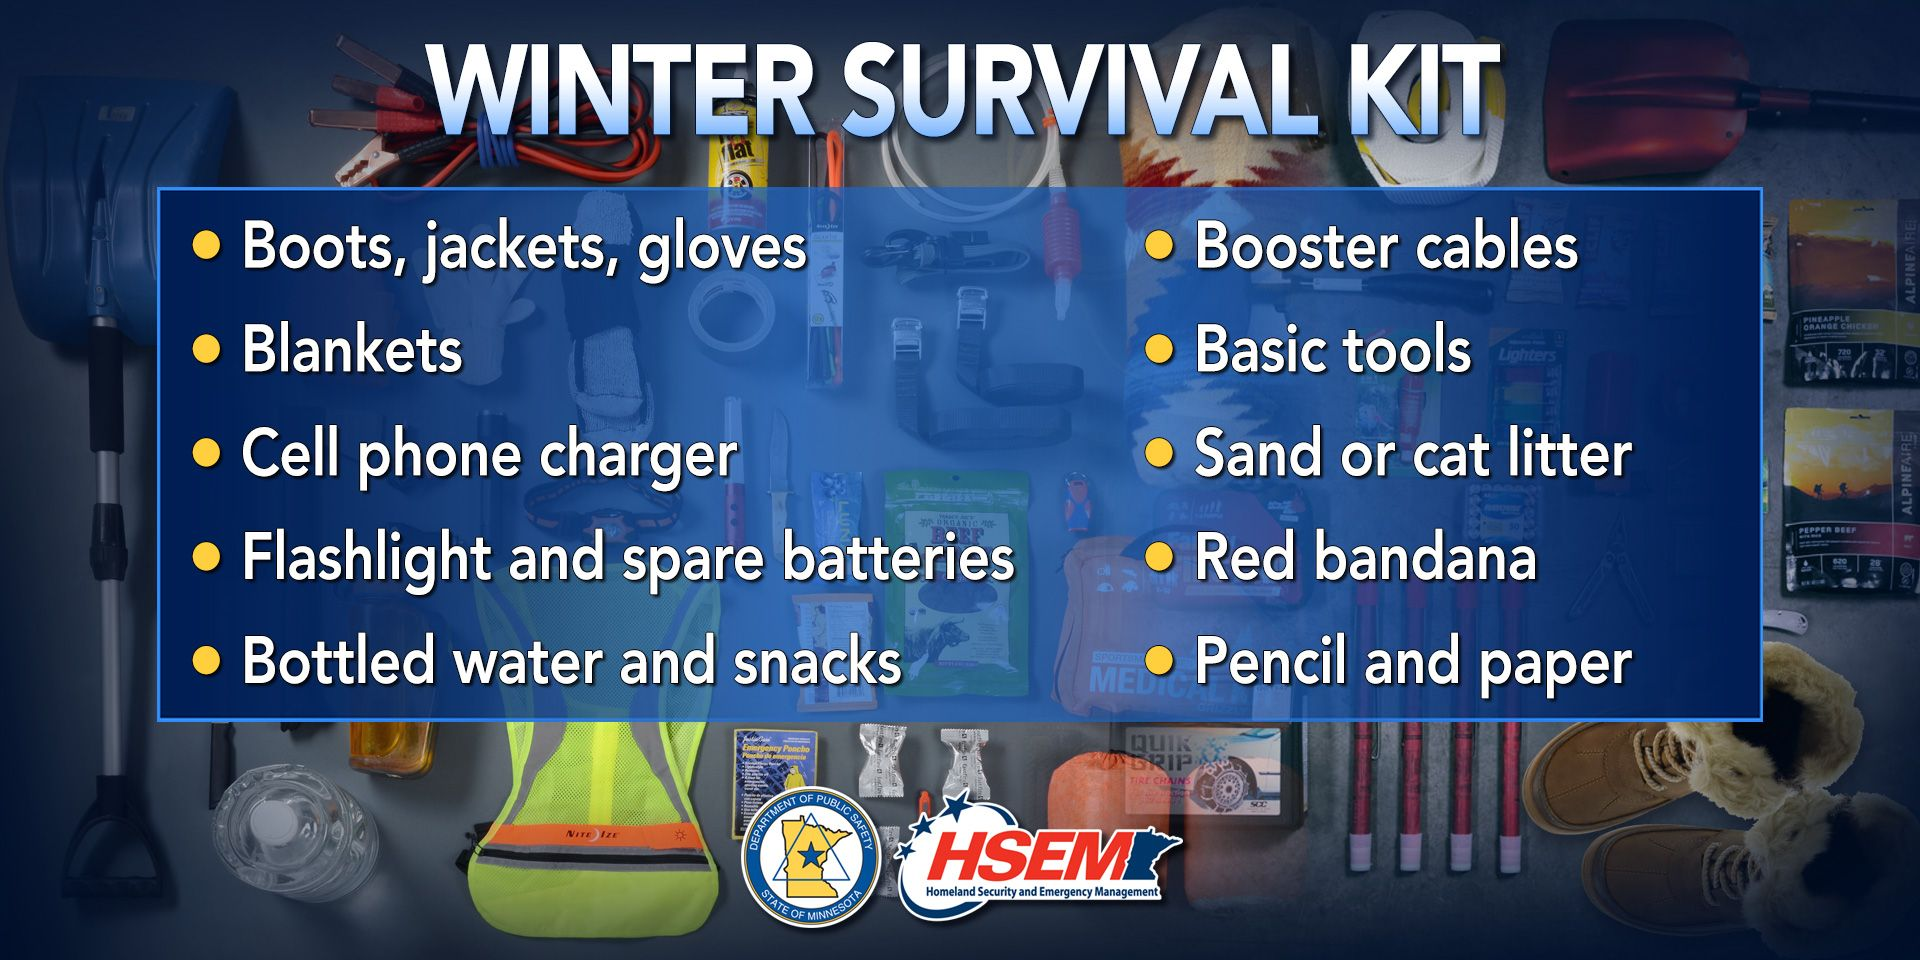 Make sure your car's winter survival kit has these 10